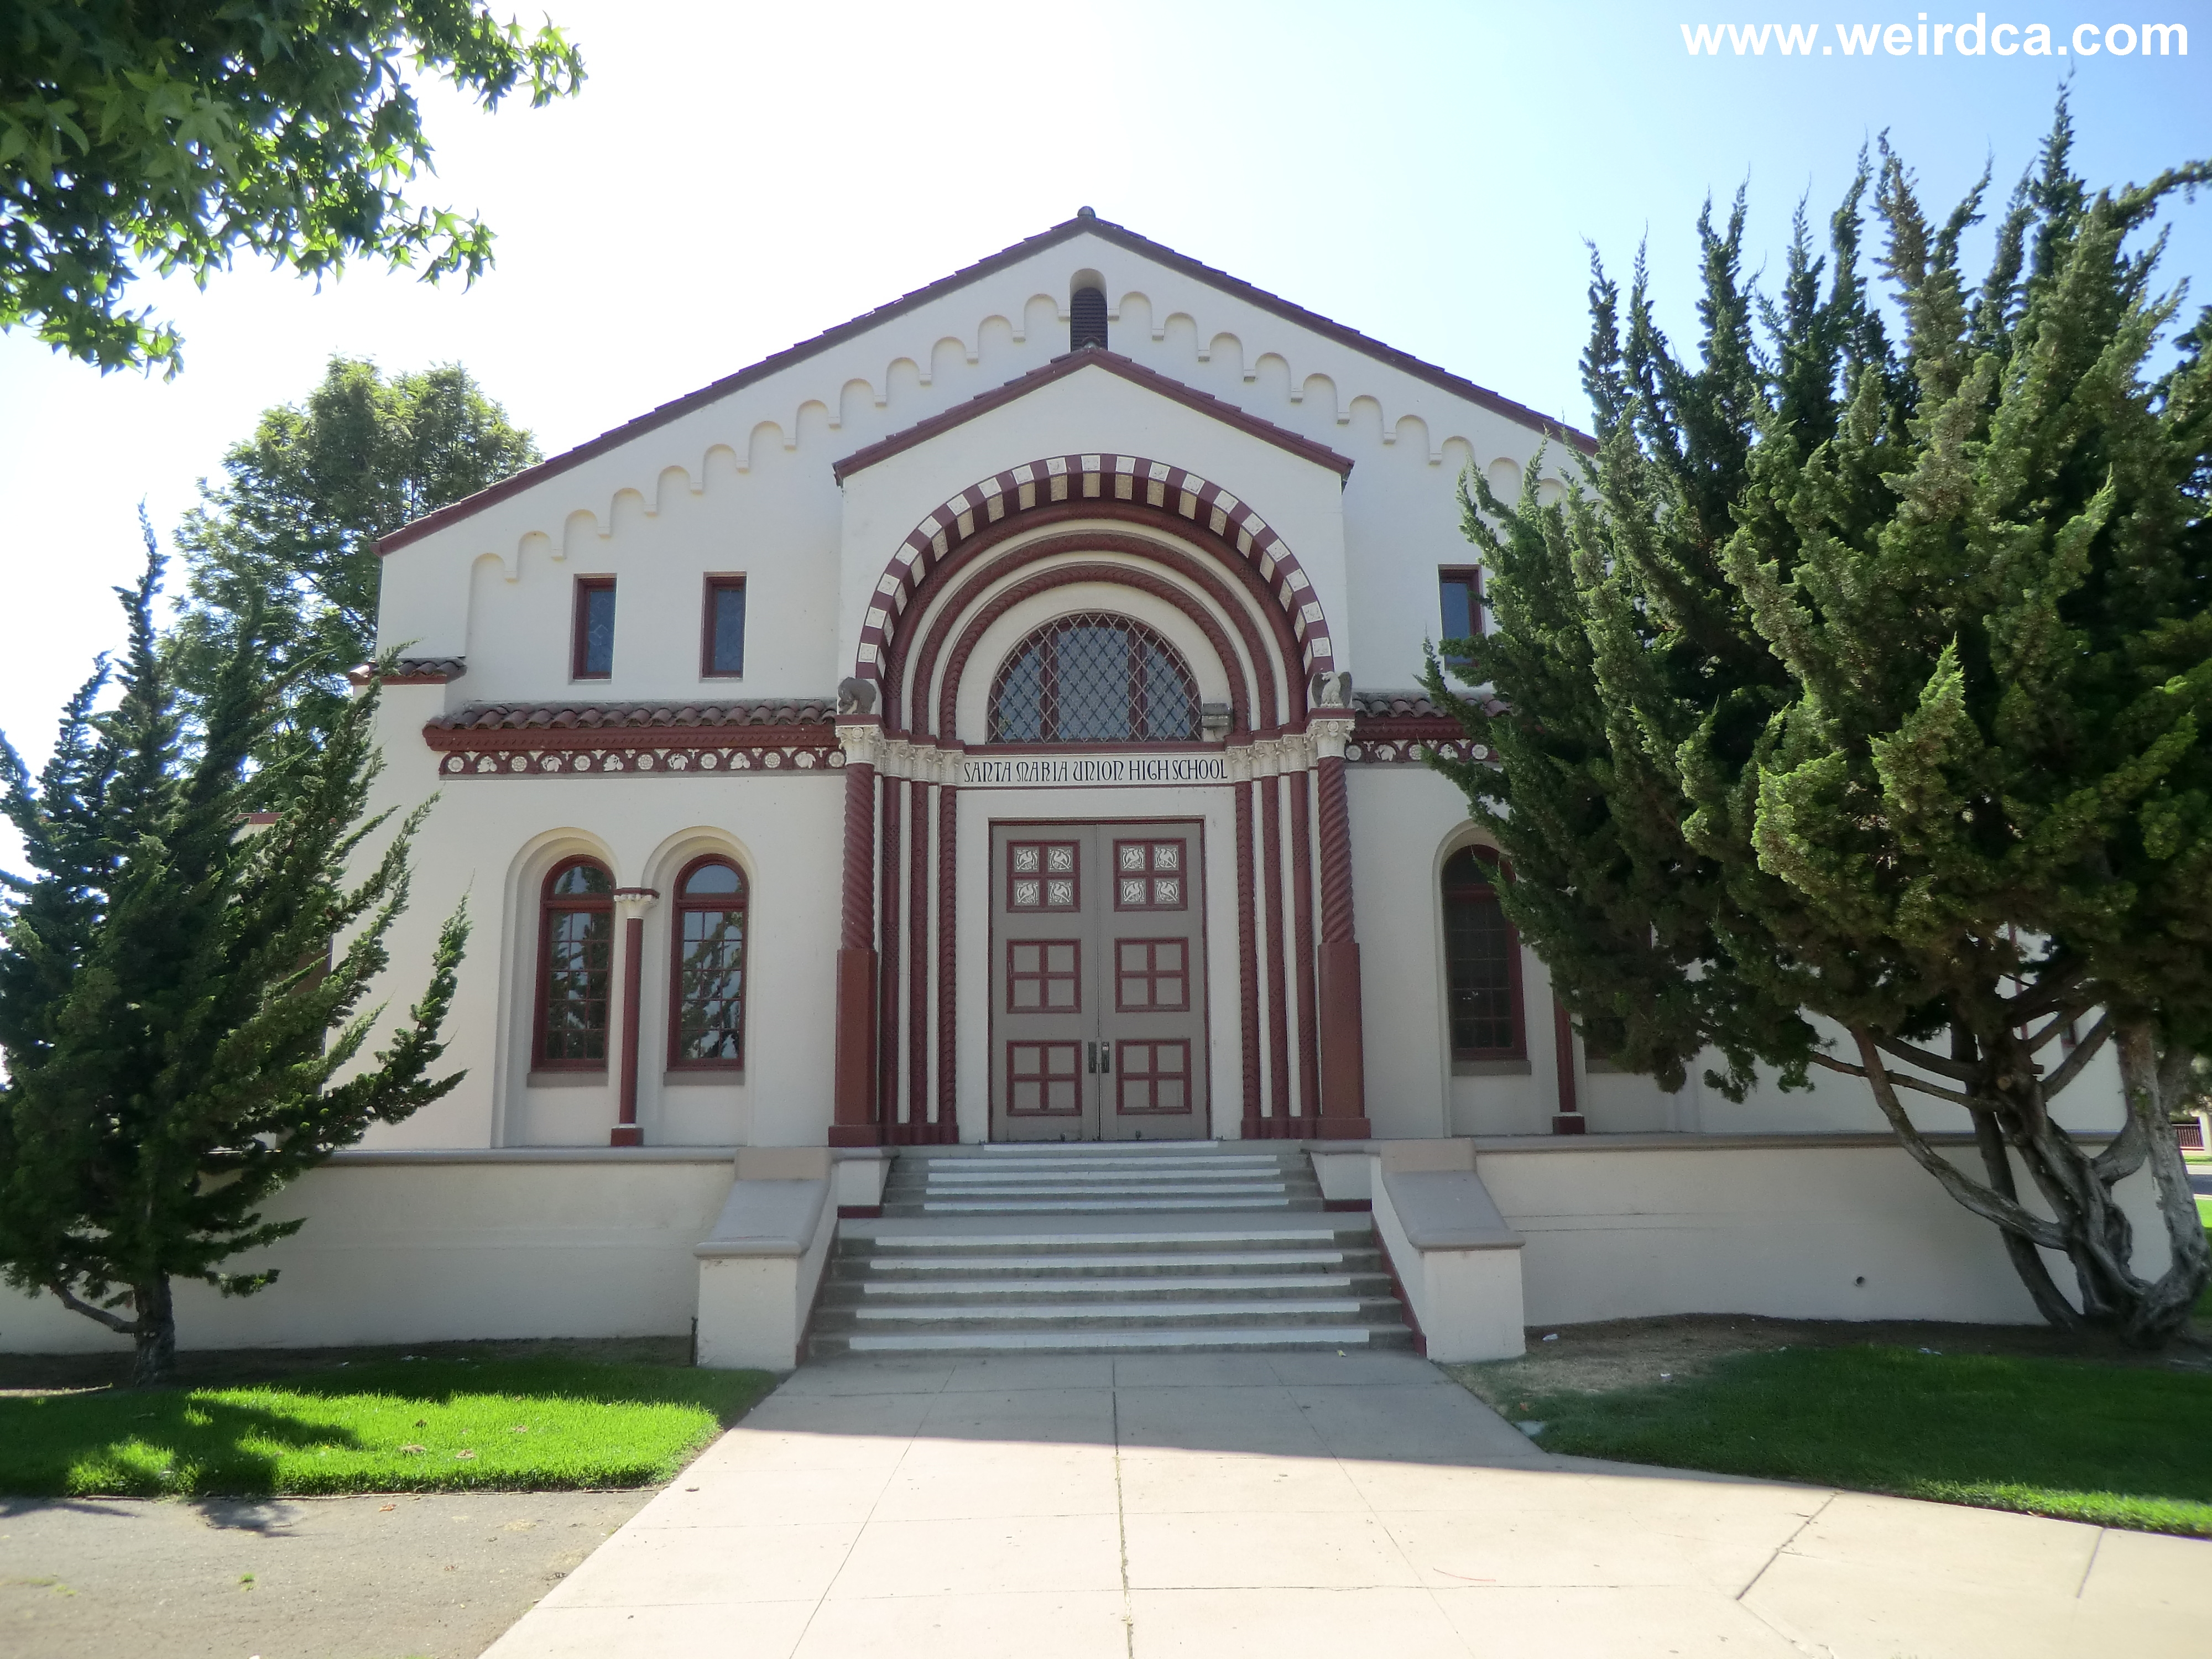 dating santa maria ca Local news for santa maria, ca continually updated from thousands of sources on the web.